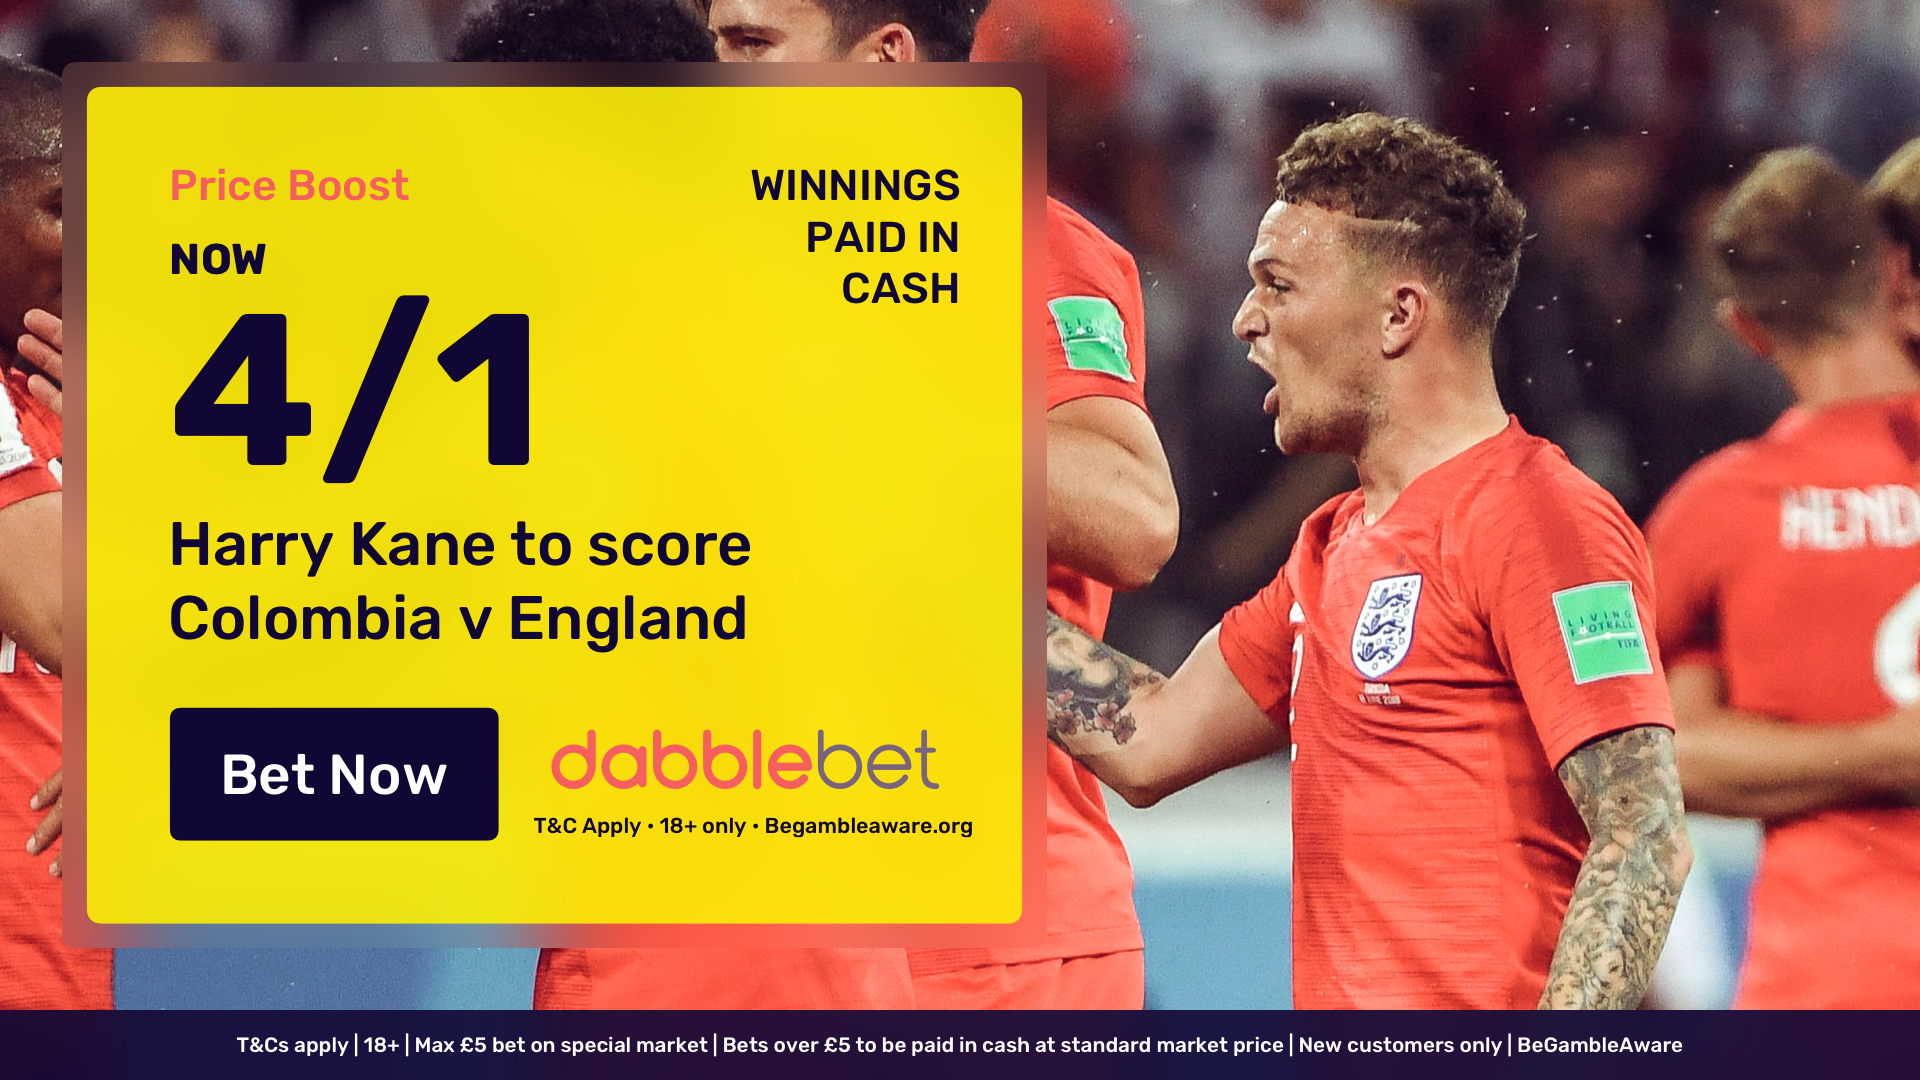 dabblebet new customer offer Harry Kane 4/1